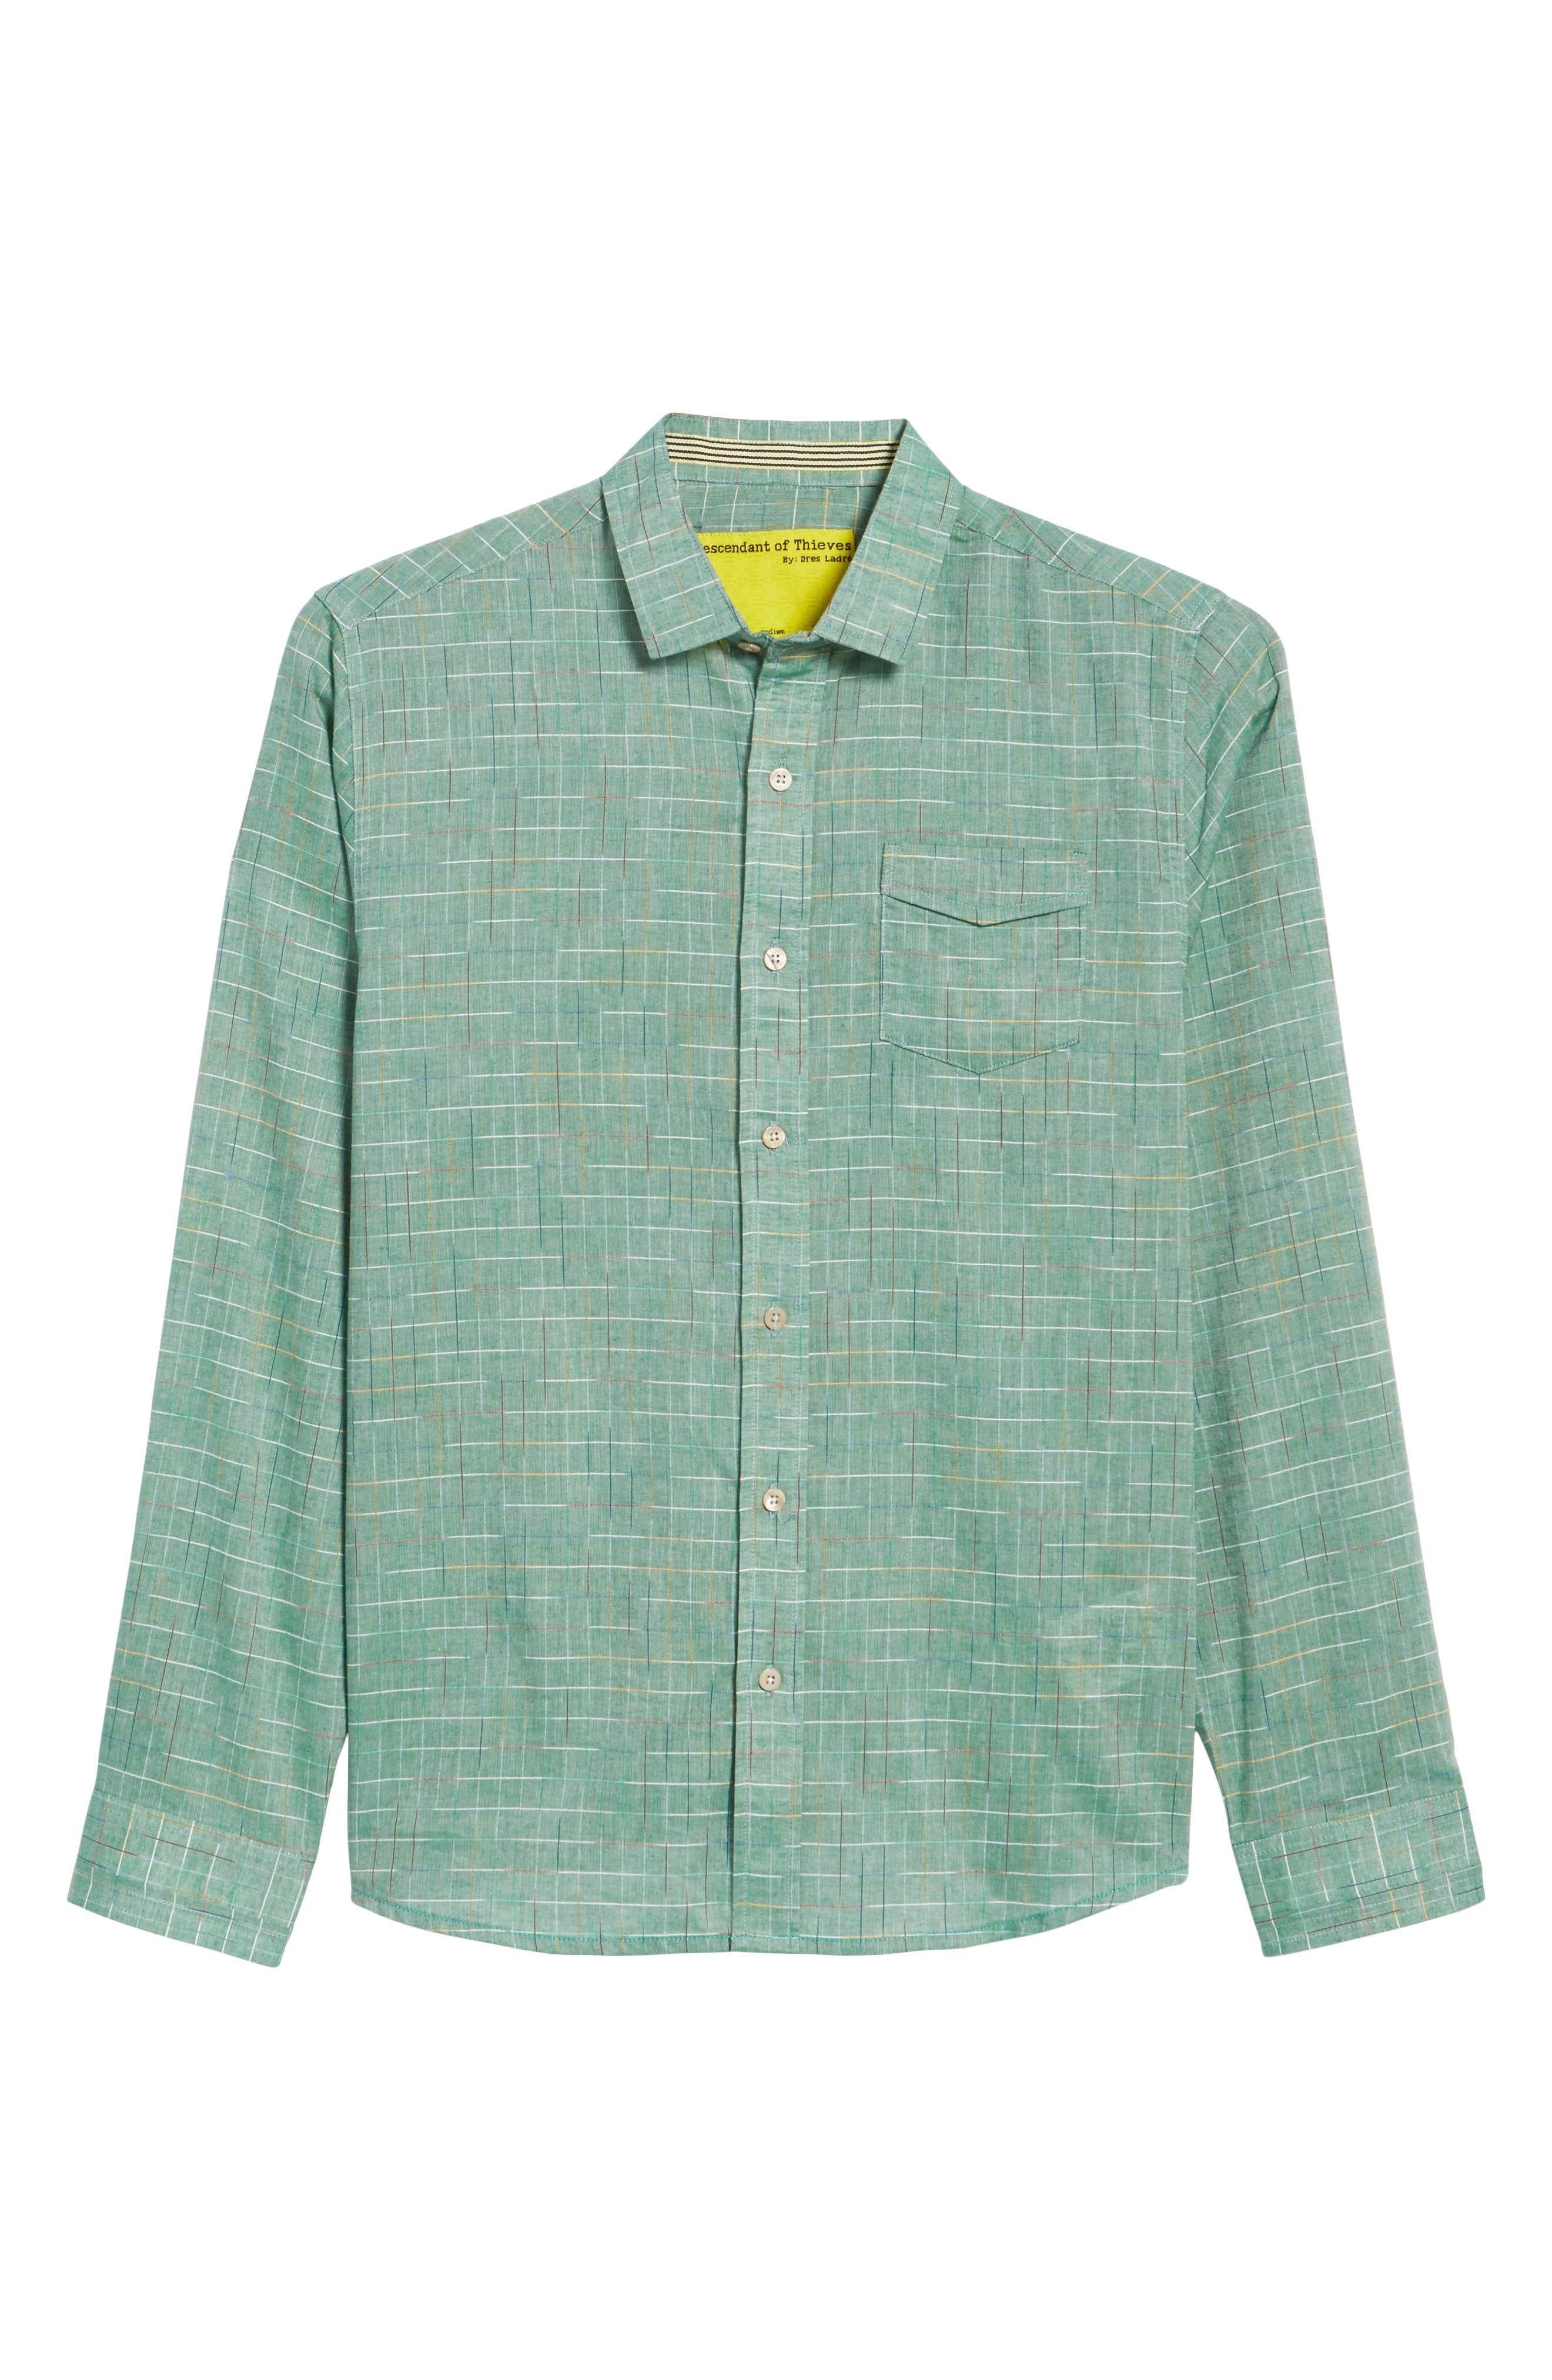 Space Plaid Sport Shirt,                             Alternate thumbnail 6, color,                             Green Bay